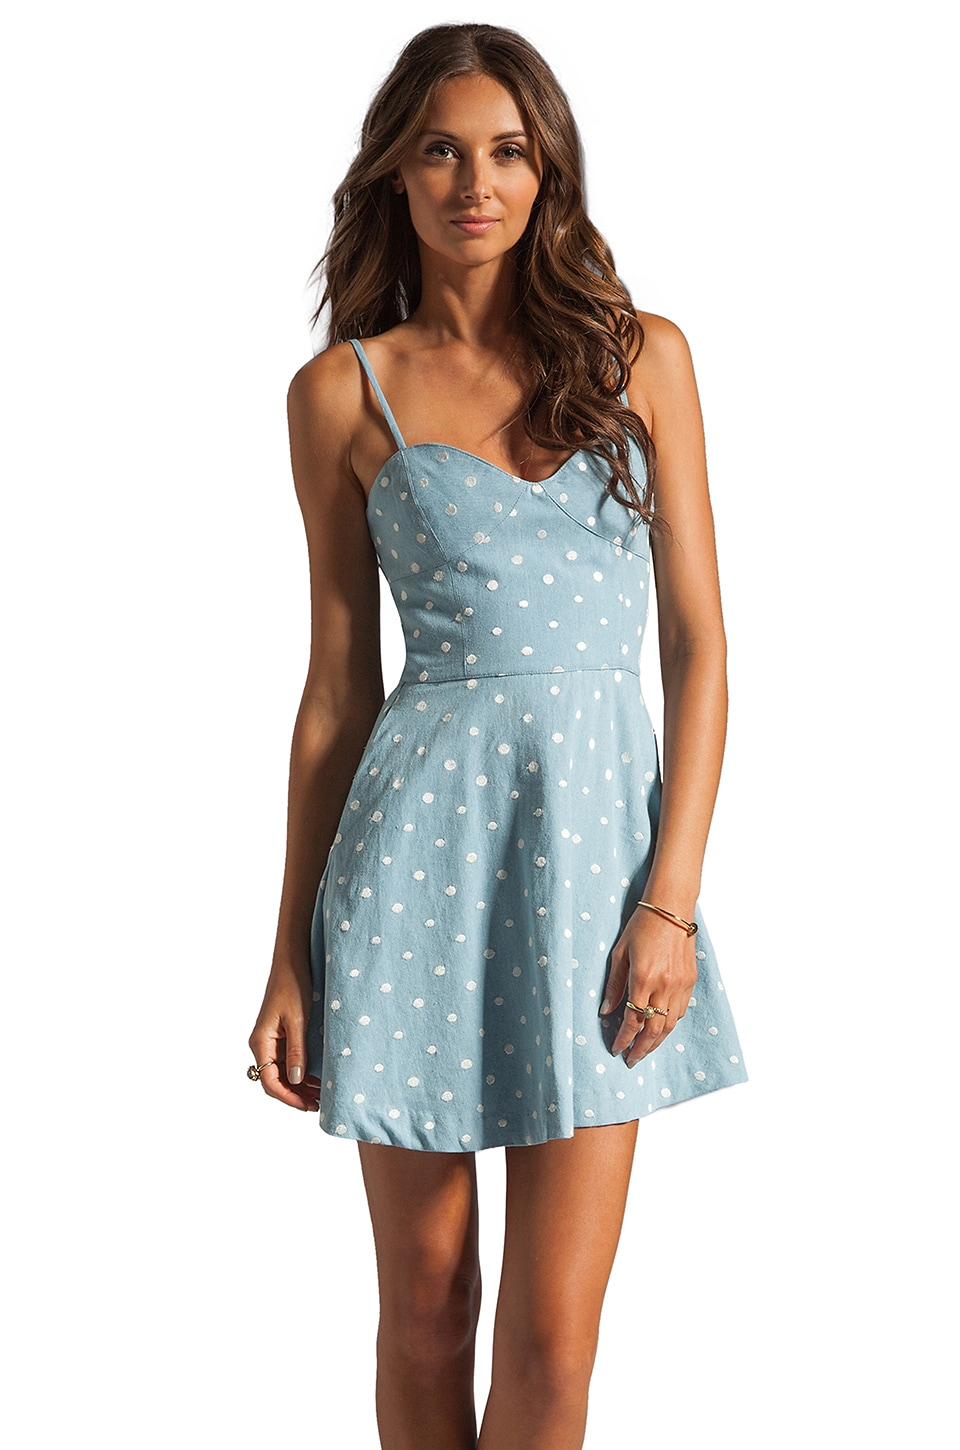 Dolce Vita Rosina Dress in Light Blue